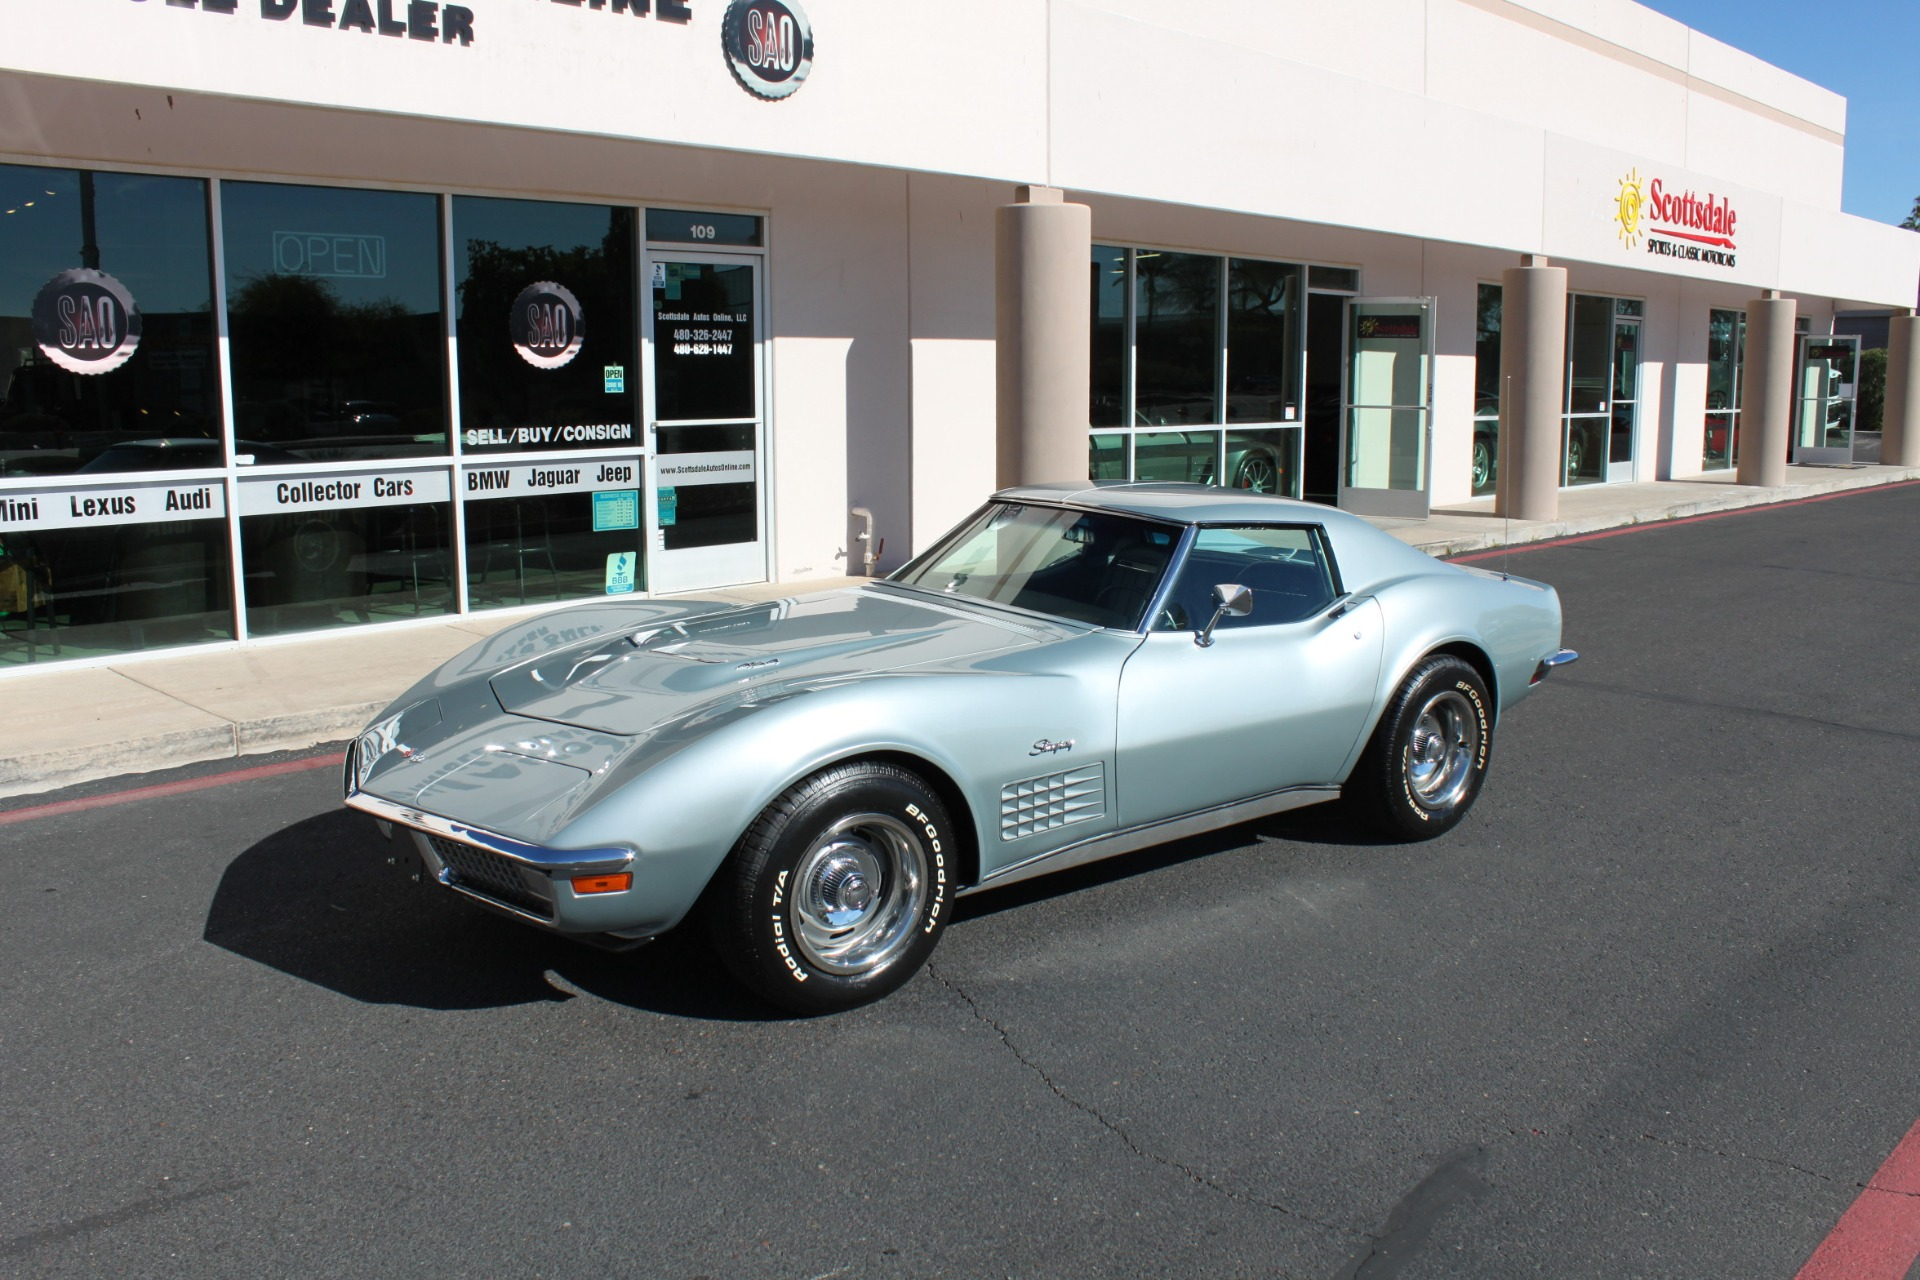 Used-1971-Chevrolet-Corvette-454-LS5-Big-Block-Land-Cruiser